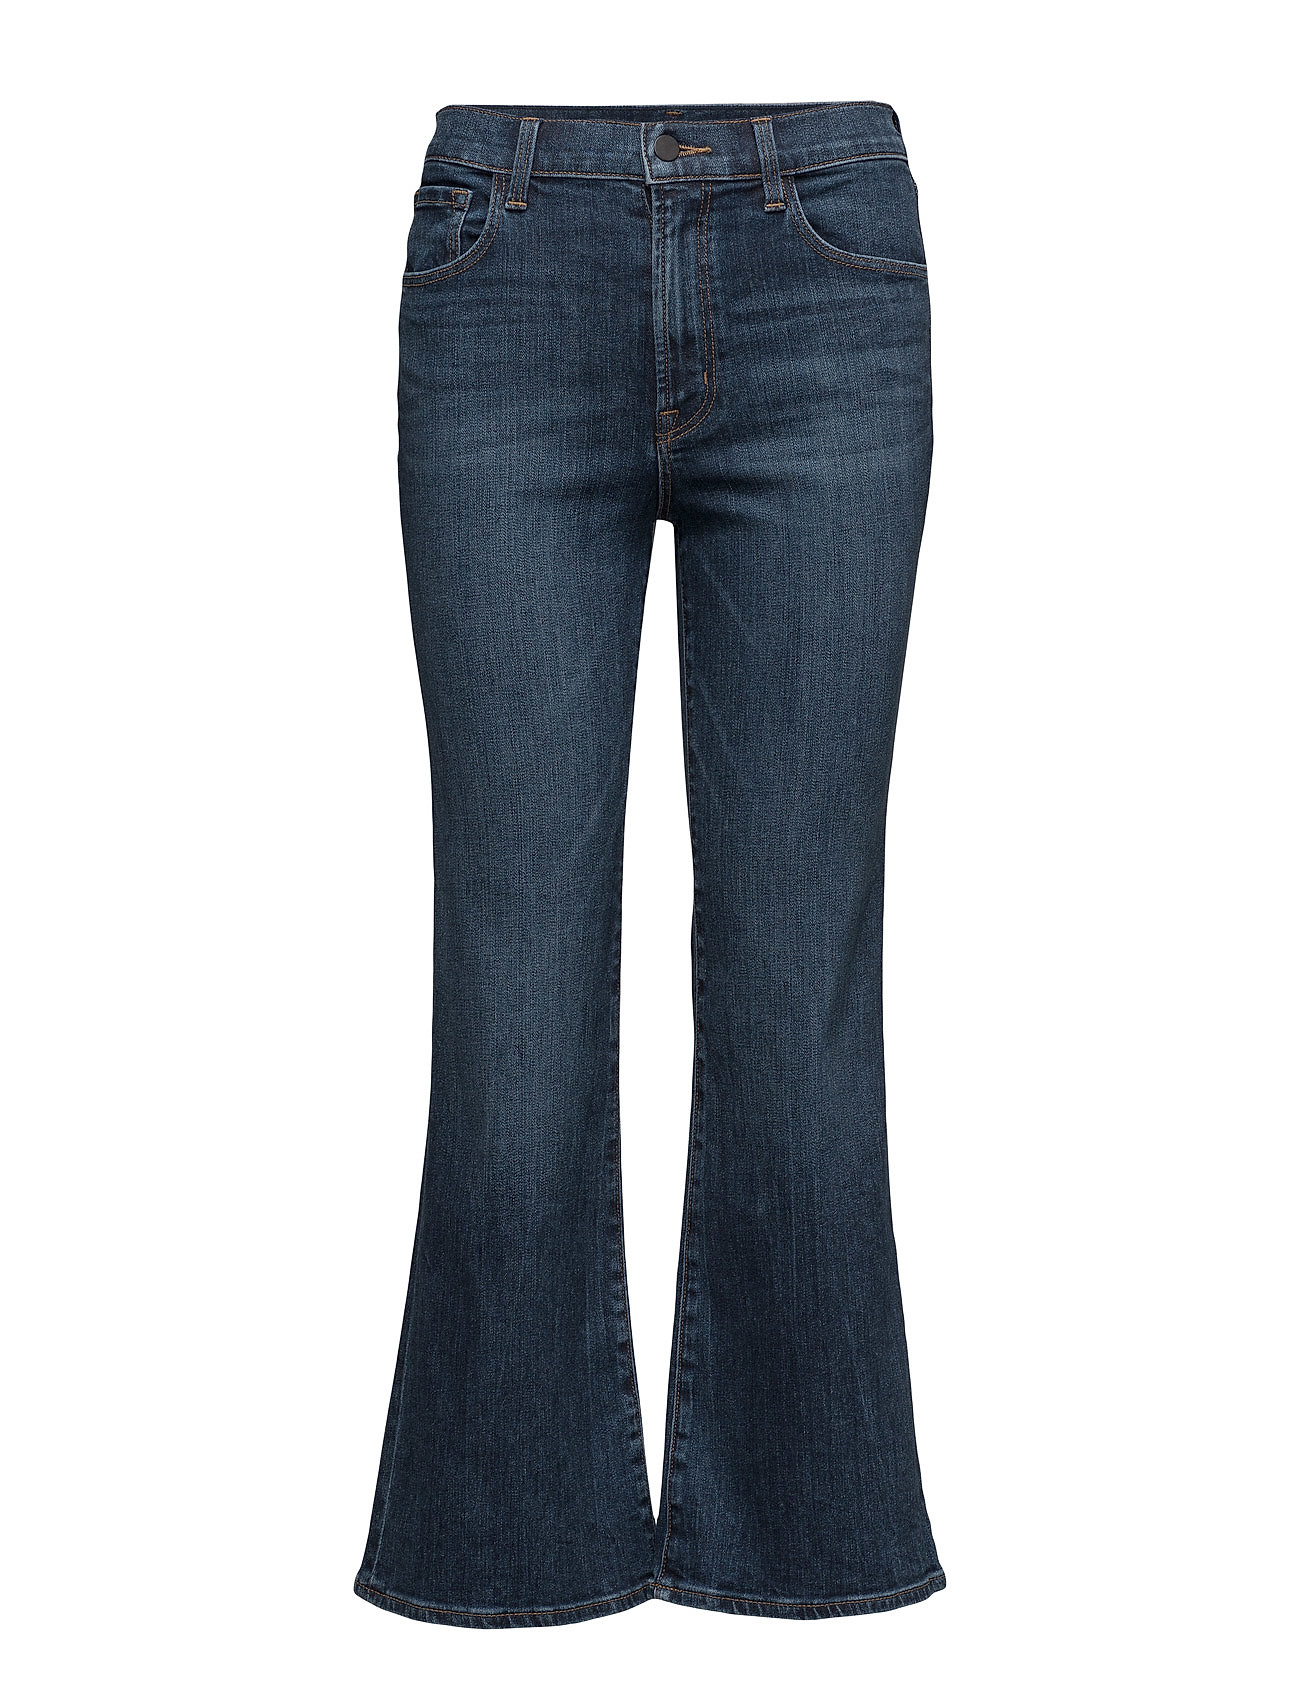 J brand T152 CAROLINA Super High Rise Ankle Flare Jeans